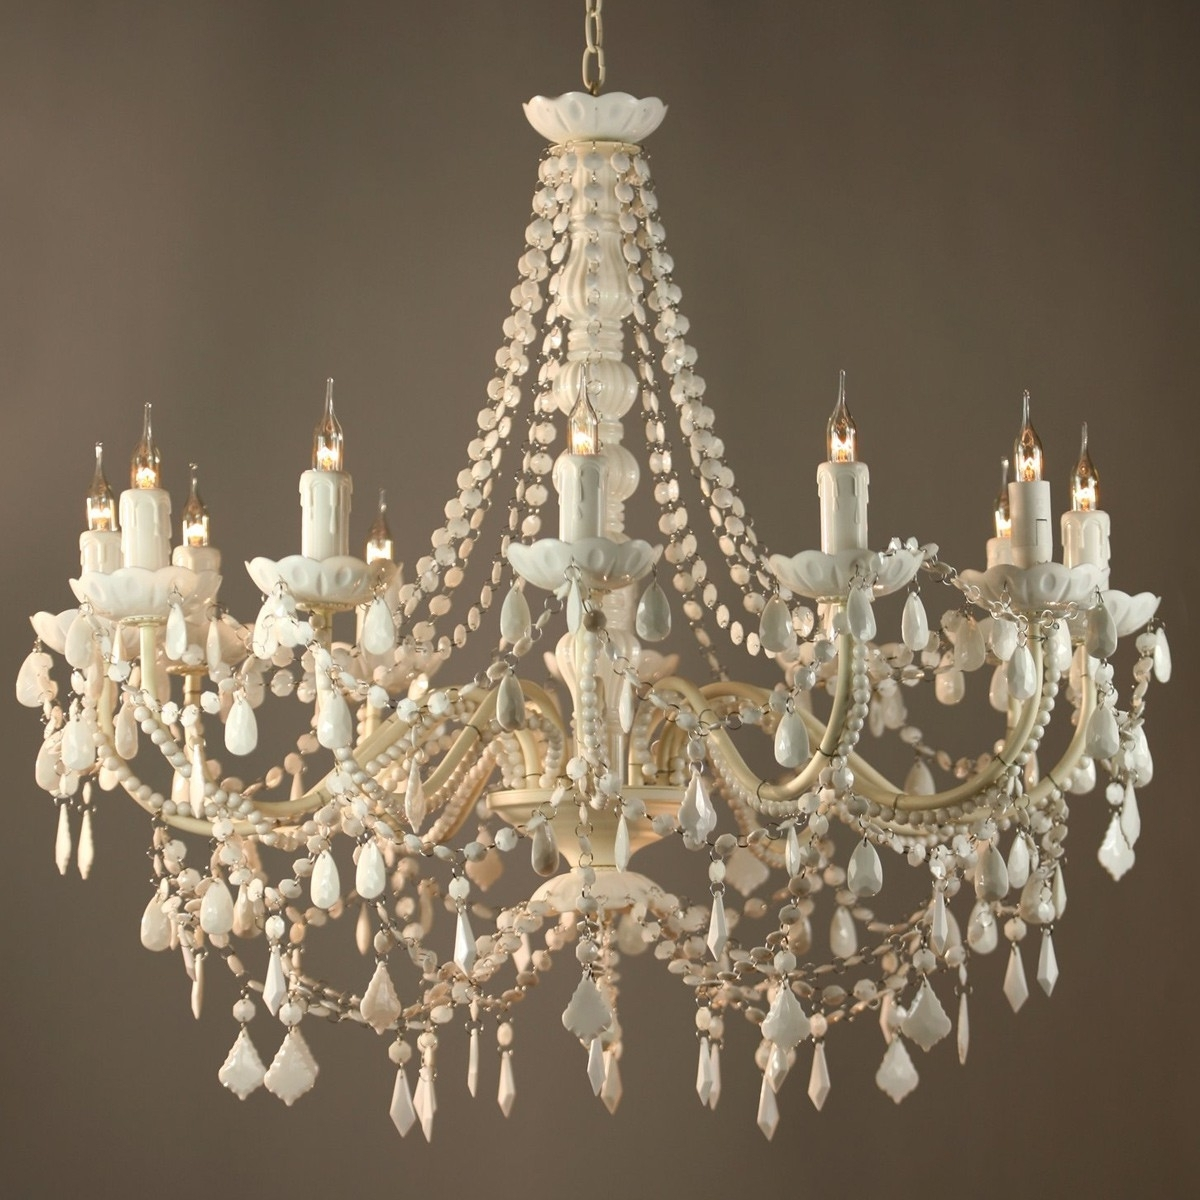 Current Antique Chandeliers For Your House Regarding Antique Looking Chandeliers (View 11 of 20)